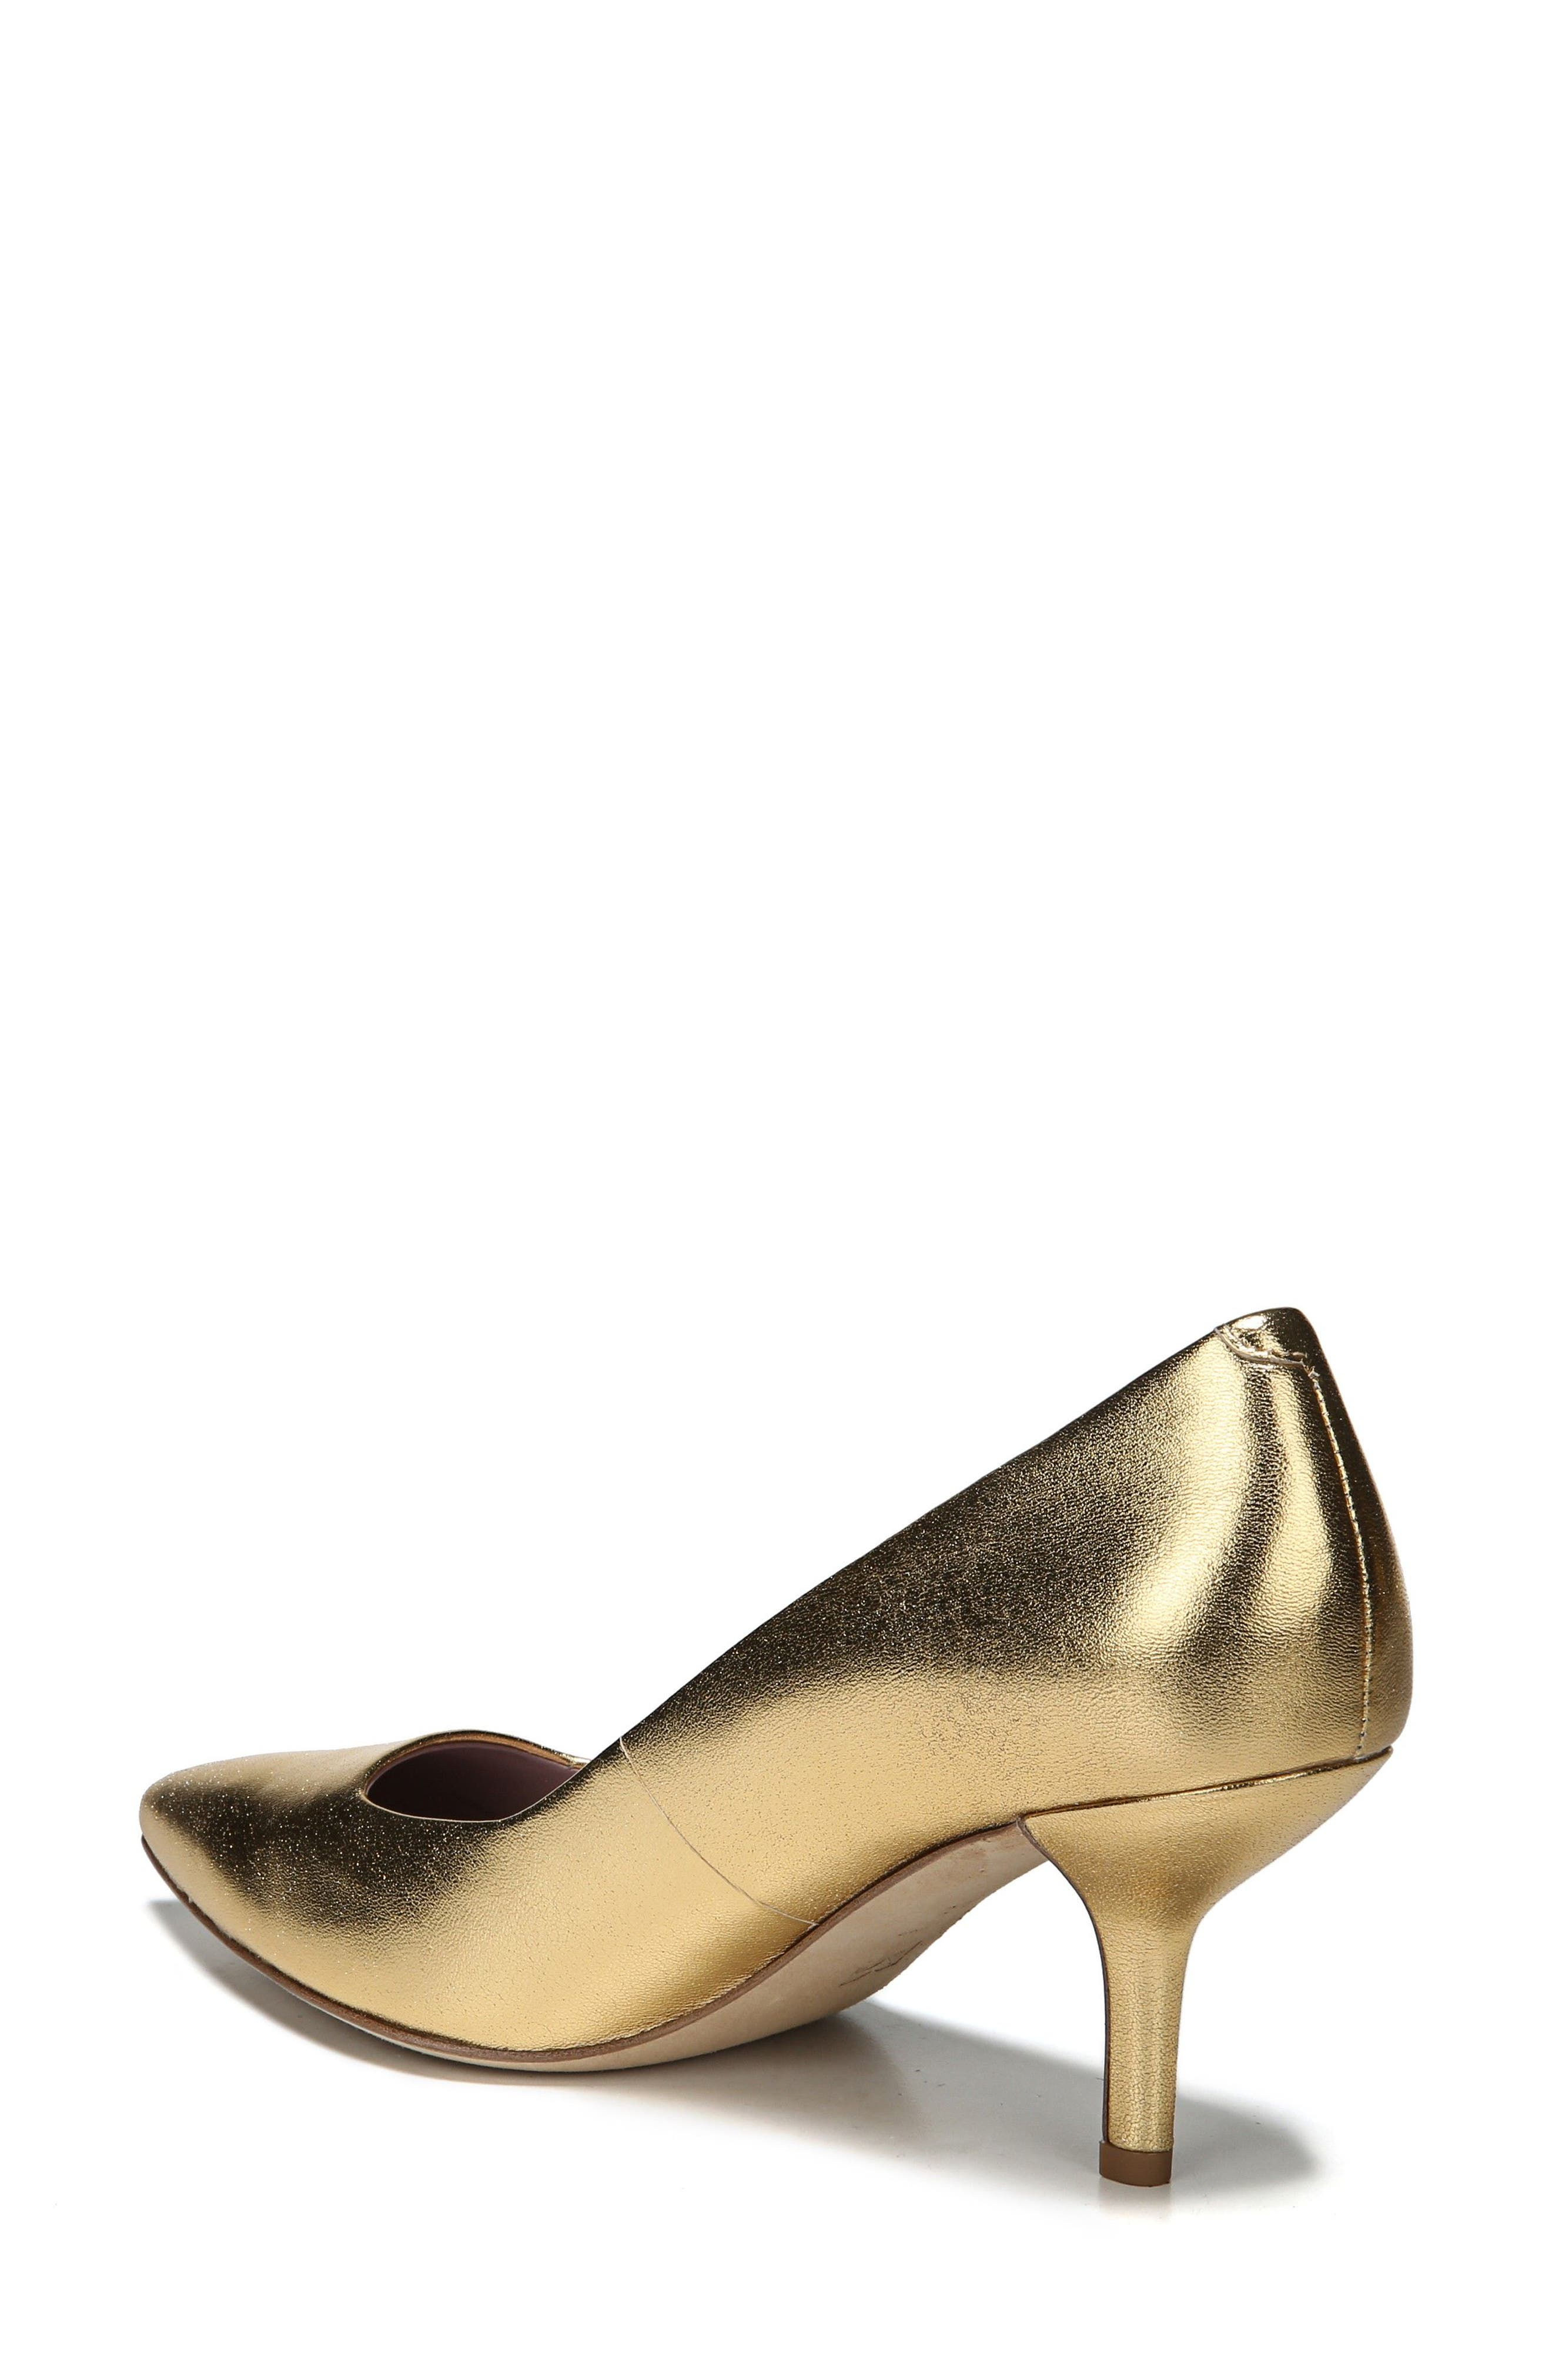 Meina Pointy Toe Pump,                             Alternate thumbnail 7, color,